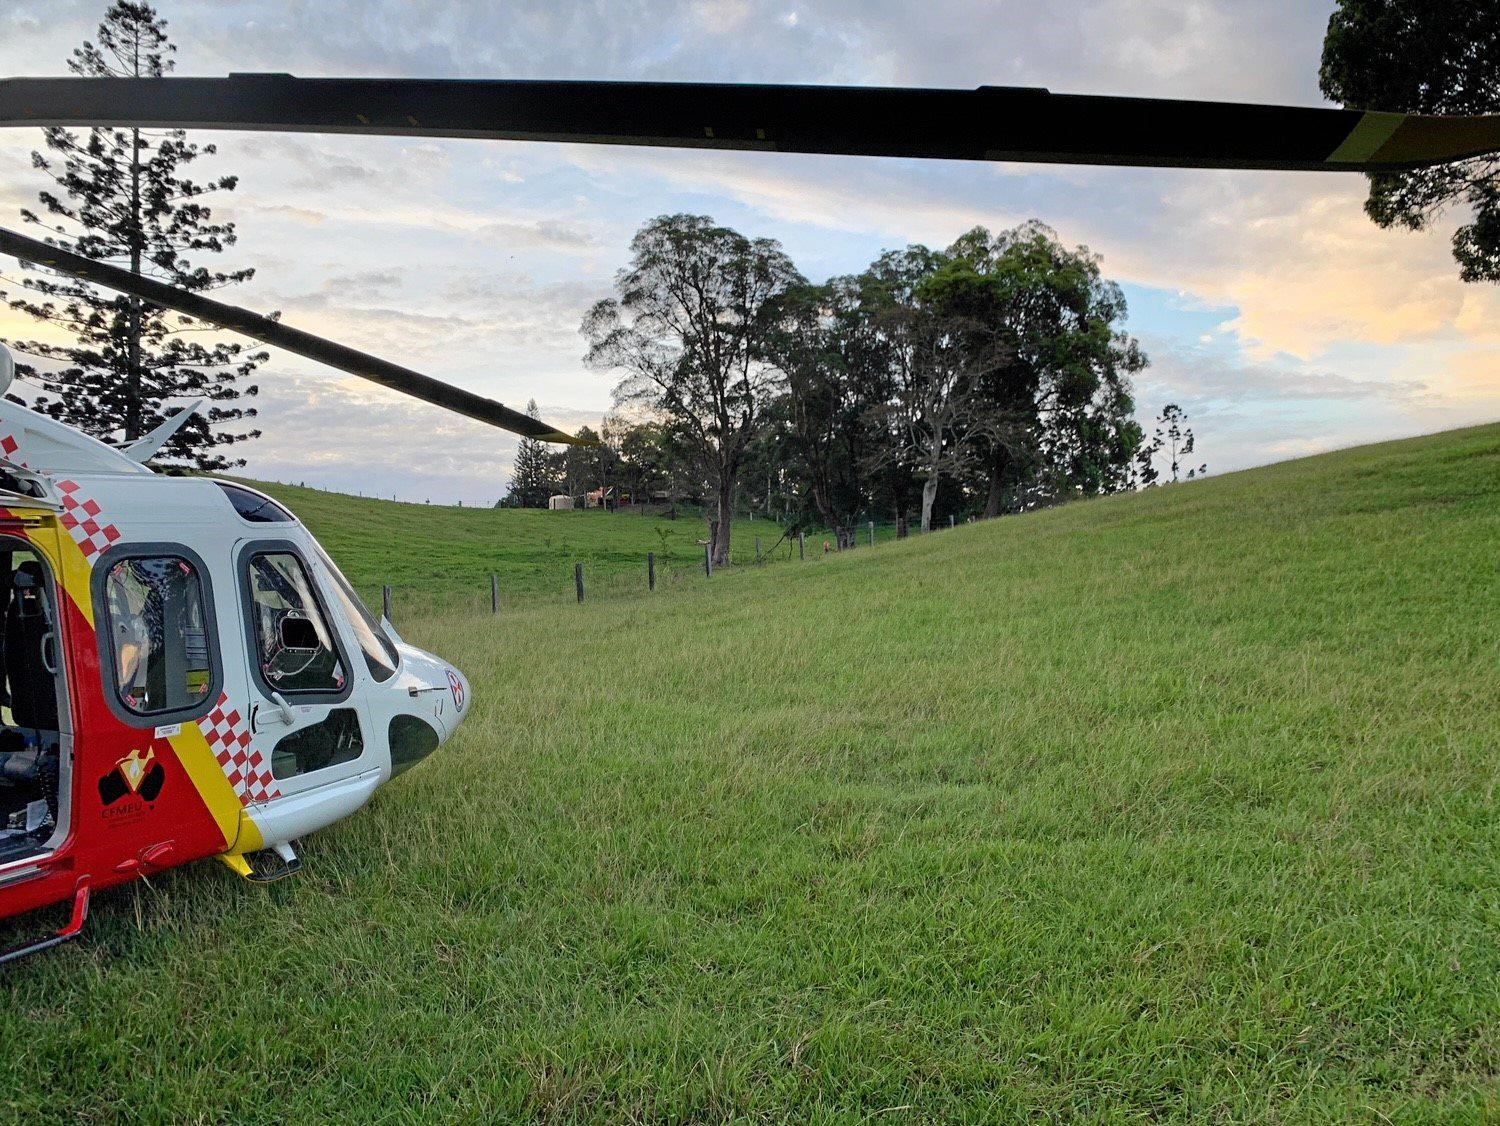 The Westpac Life Saver Rescue Helicopter was tasked to the Kyogle area to treat a 59-year-old man who had been injured by a falling haybale.